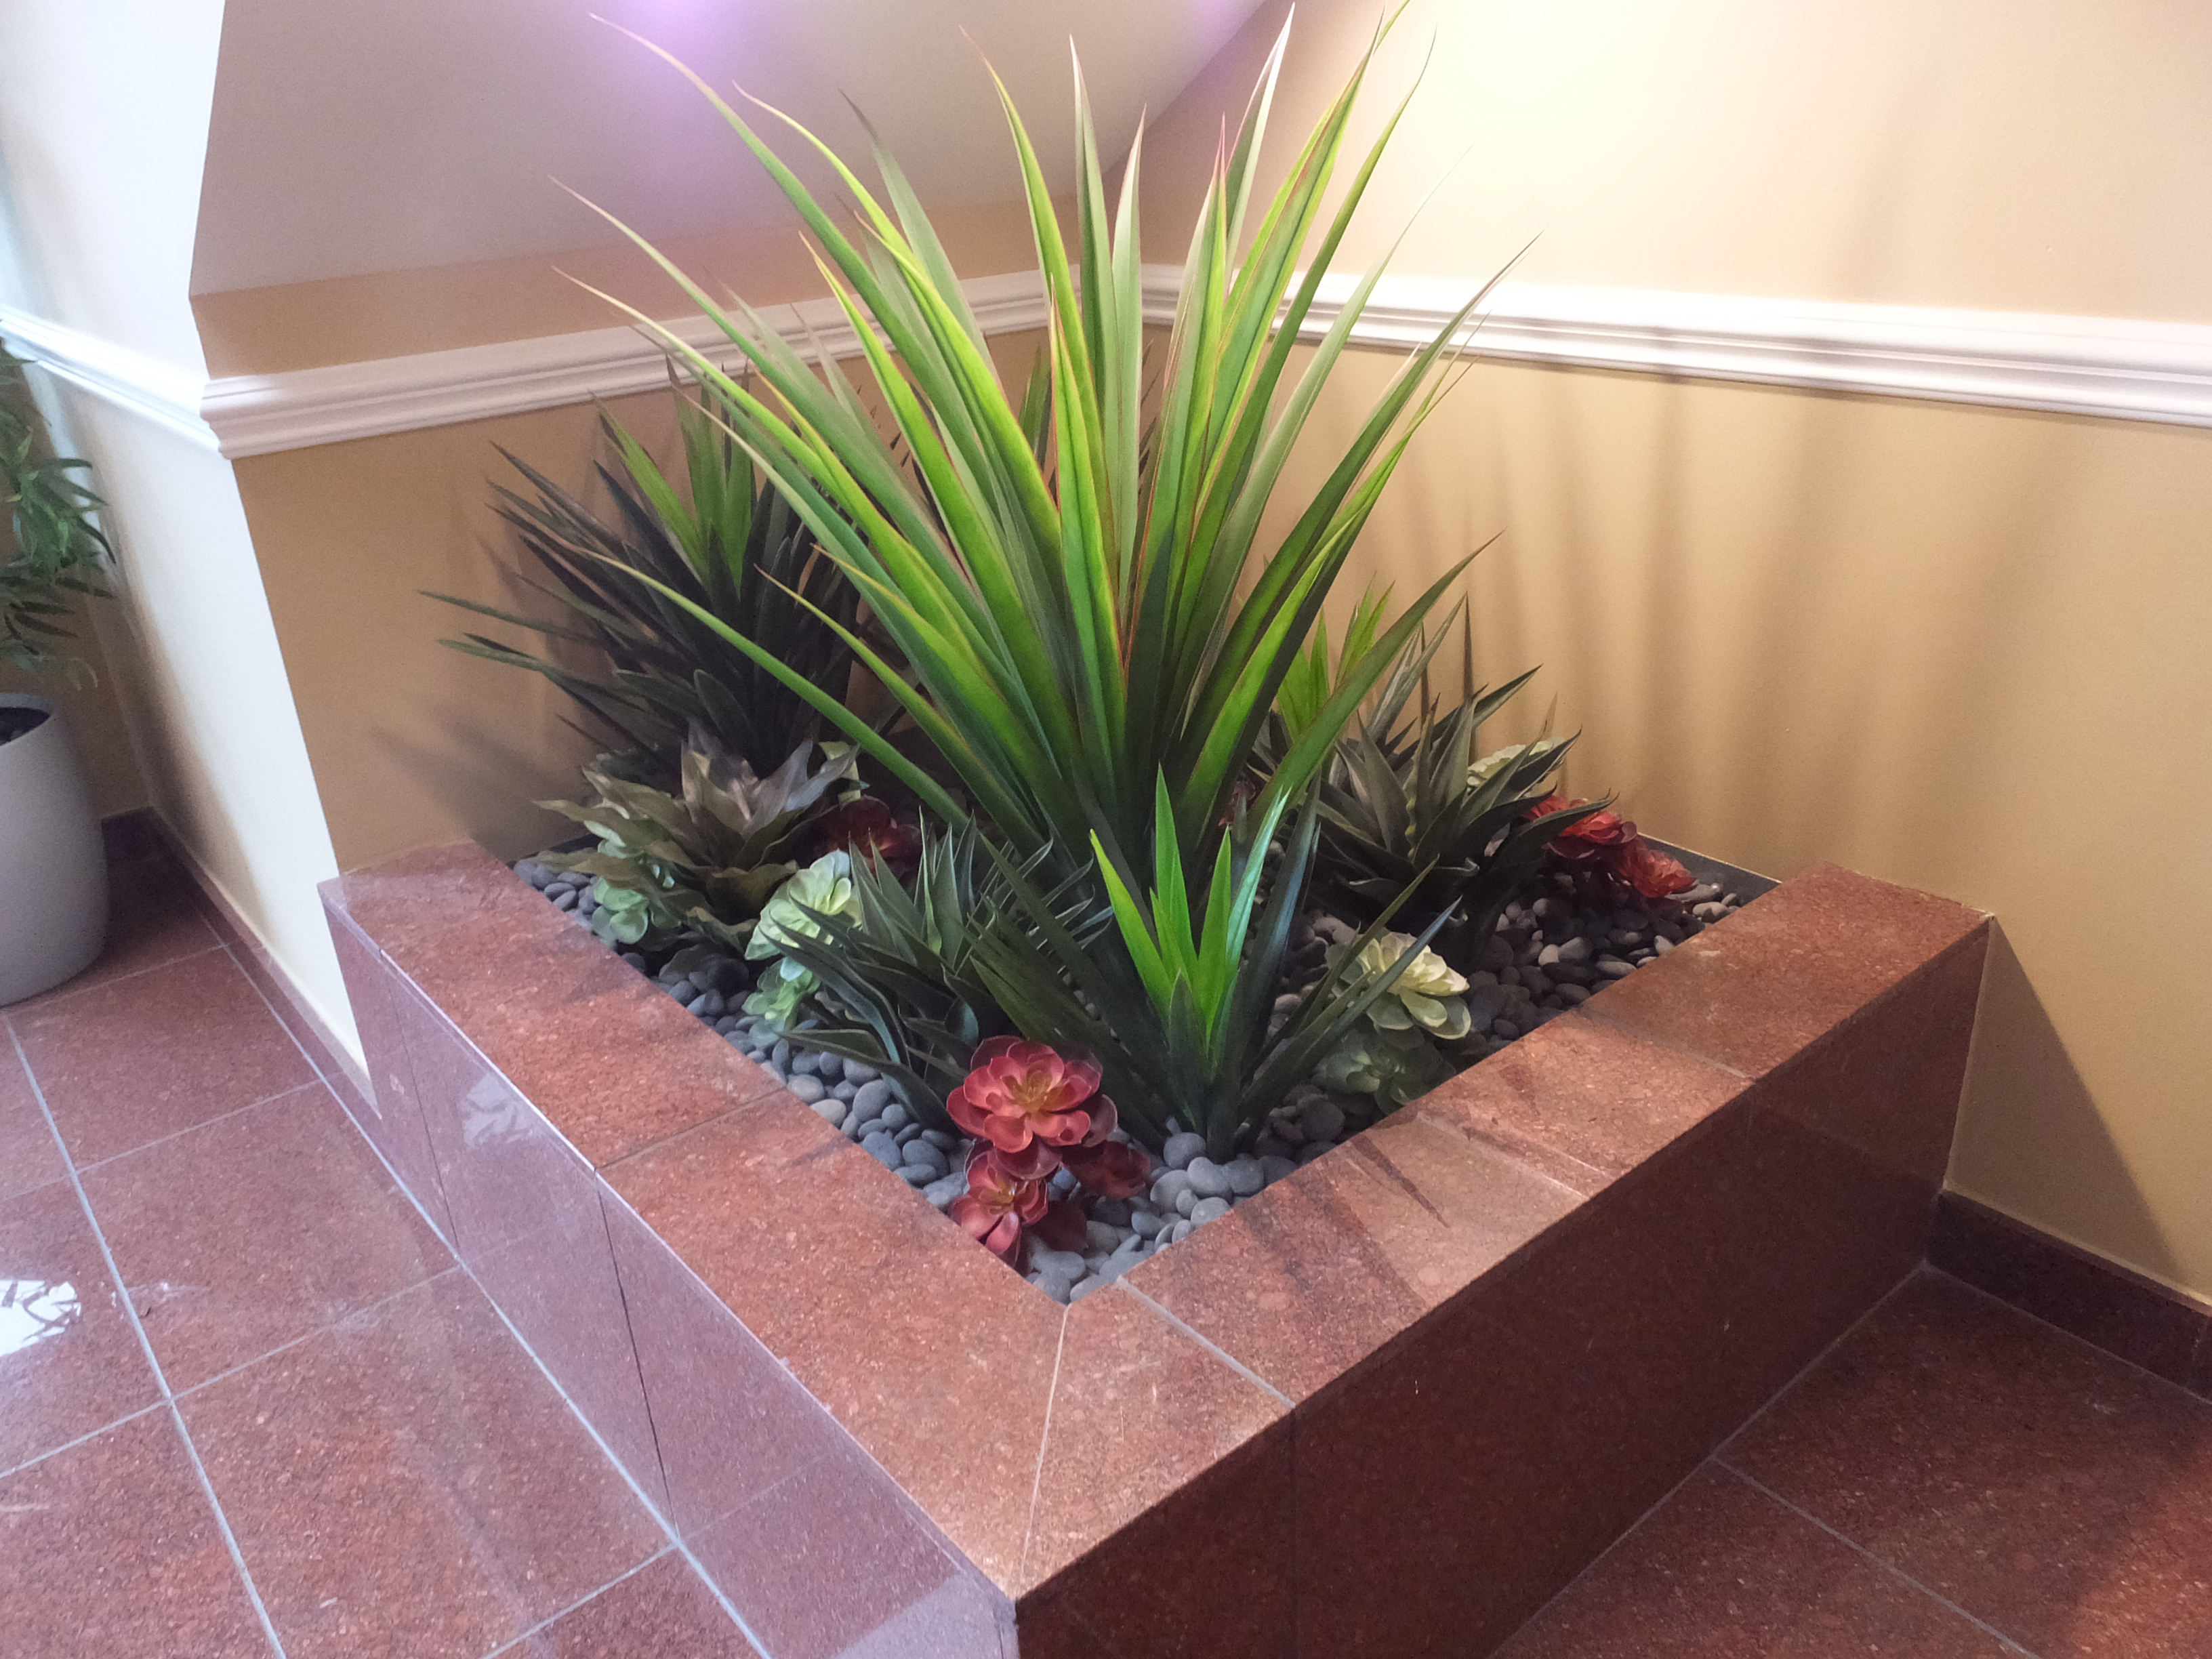 Commercial building: AFTER photo of planter above - with mixed succulents